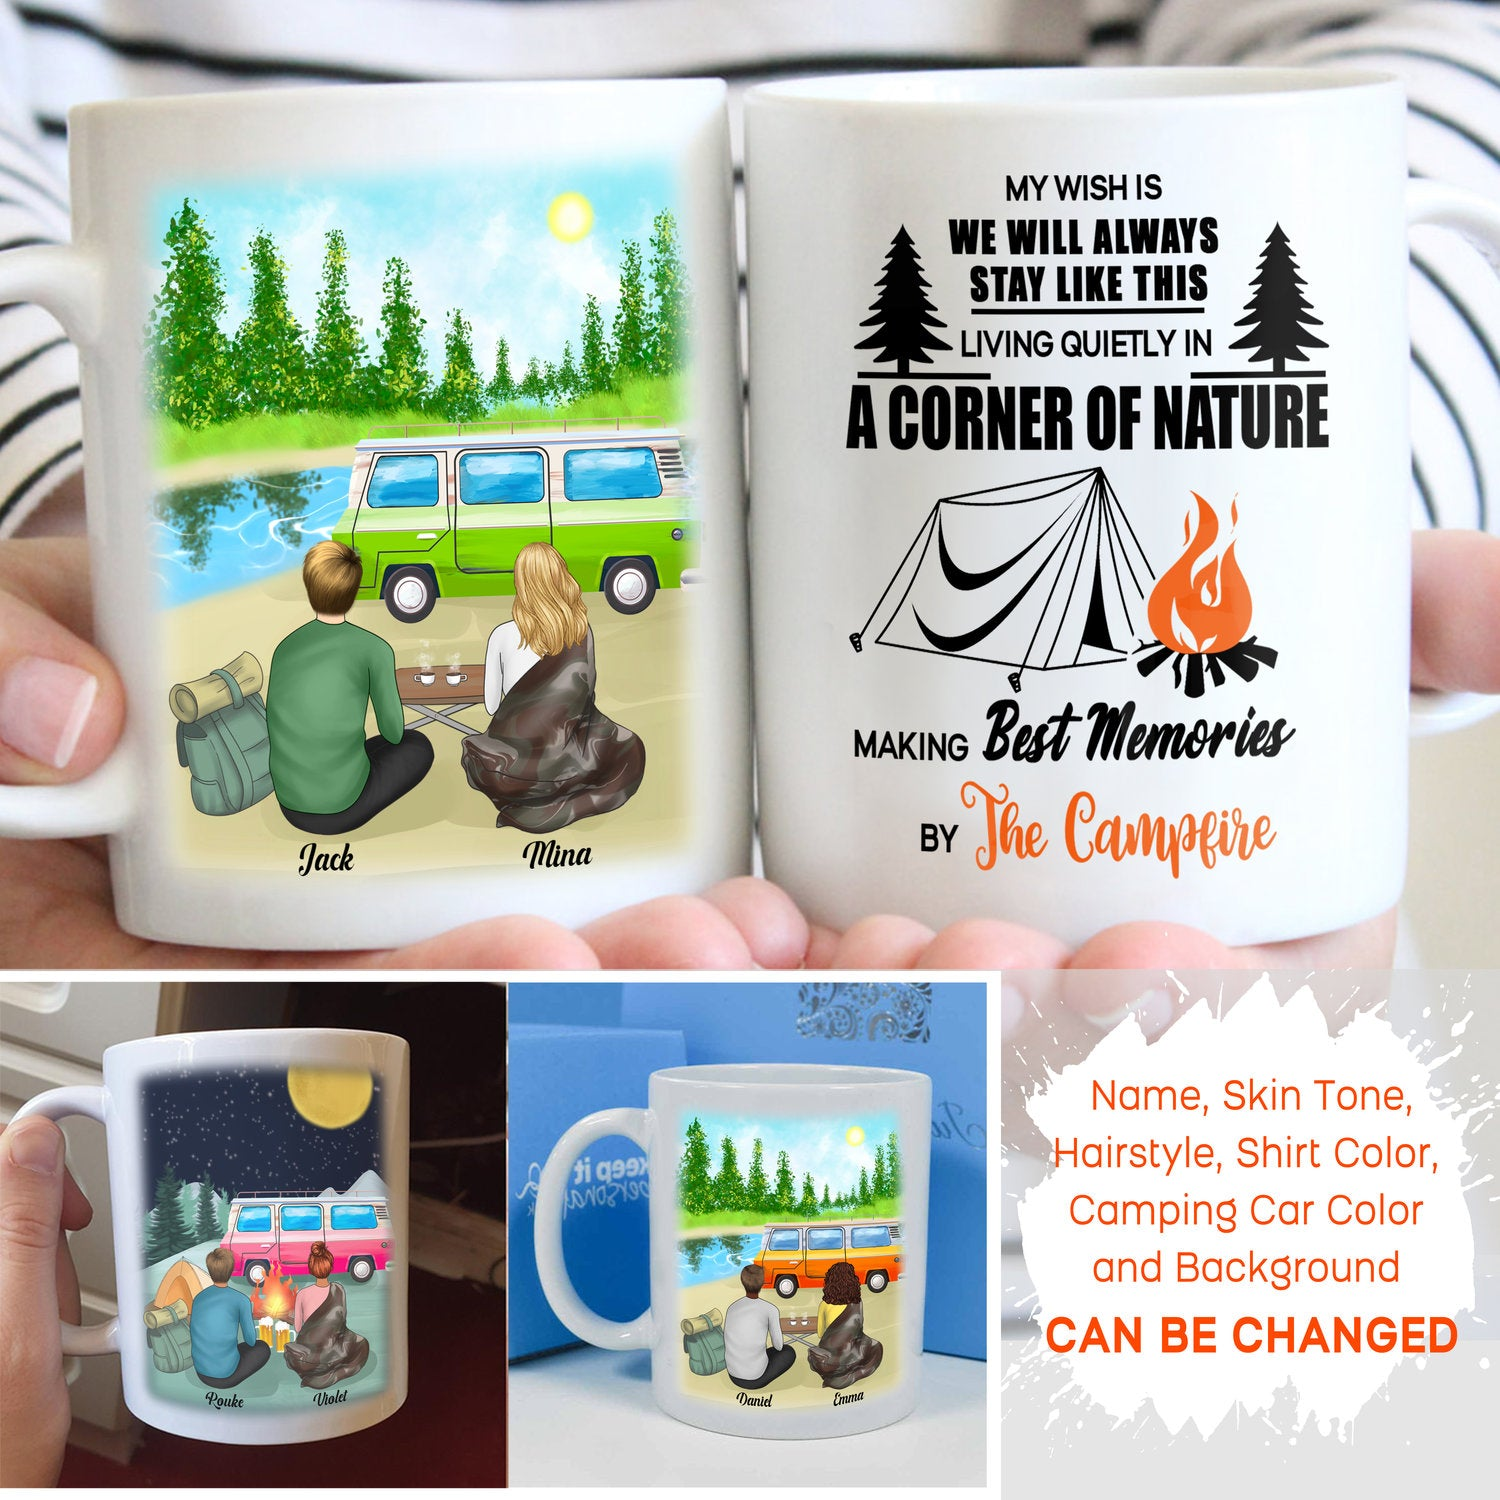 Personalized Custom Coffee Mug – Making Best Memories By The Campfire – Gift for Camping Couple, Camping Mug, Mug with Quotes, Birthday Gifts - 7208